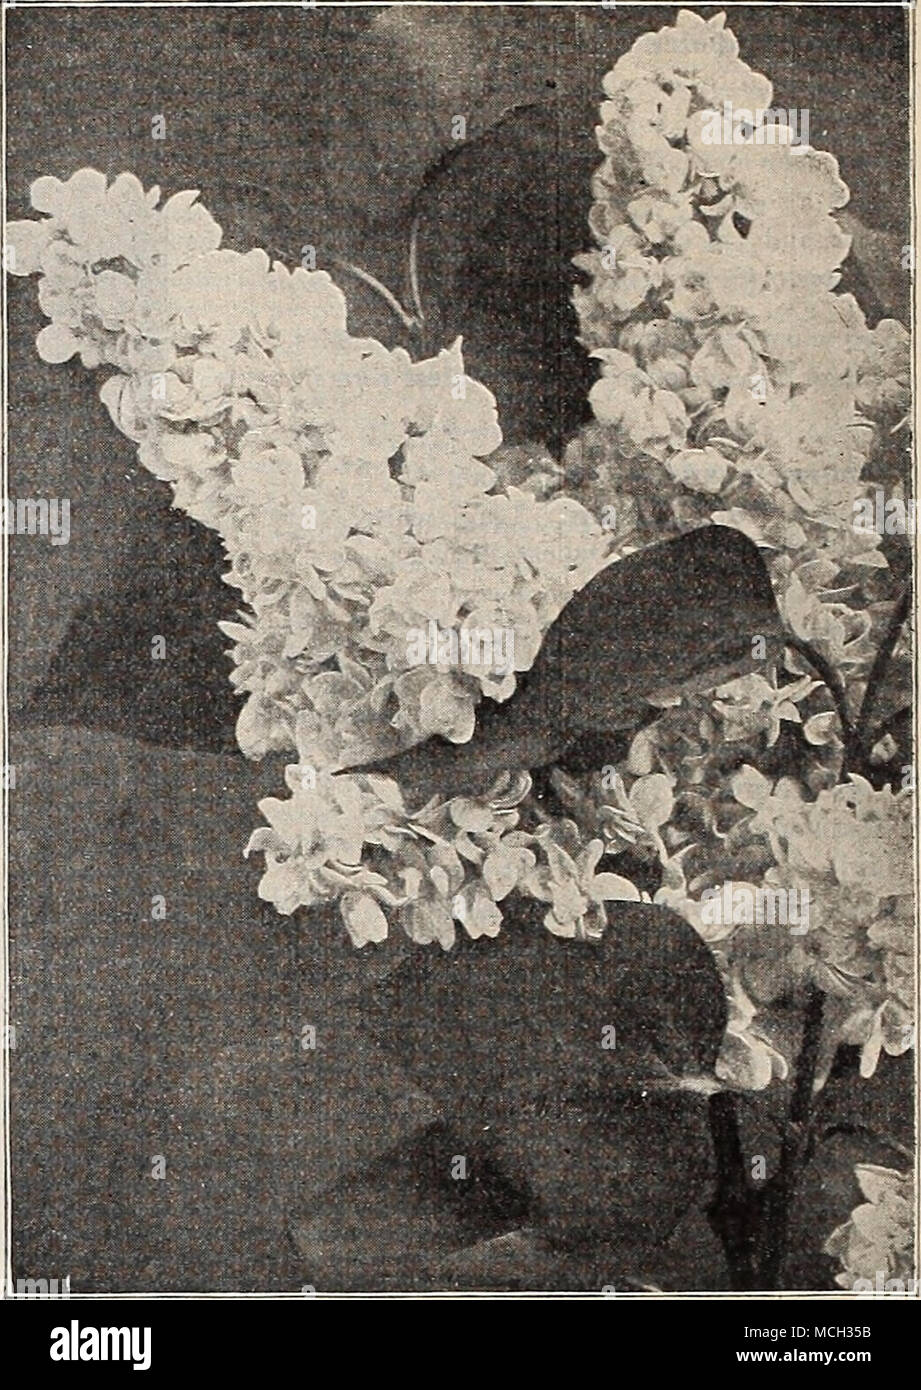 . Syringa or Lilac, Mme. Casimir Perier. SVKINGA, OR LILACS. Lilac Charles X. .â V strong rapid-growing variety, with largi-, shining leaves. Trusses rather loose; large, reddish-j.nrjilc. 50 cts. each. â Common {Syringa vulgaris). The common purple lilac s|iecies. 25 cts. each. â Common White (5. Vulgaris alba). Flowers pure white, fra''iaiit, beautiful. 25 cts. each. r . if ^f%^ - 4f mS^ -^ 5t^% â â .r; ^y^'*^ BTOBiJiy'my- * I SVMPHOHlCAKi-US Lilac Emodi. Entirely distinct an<l p.irticularly useful because it does not ijloom until June, wdien all other varieties are out ⢠it flower; the  - Stock Image